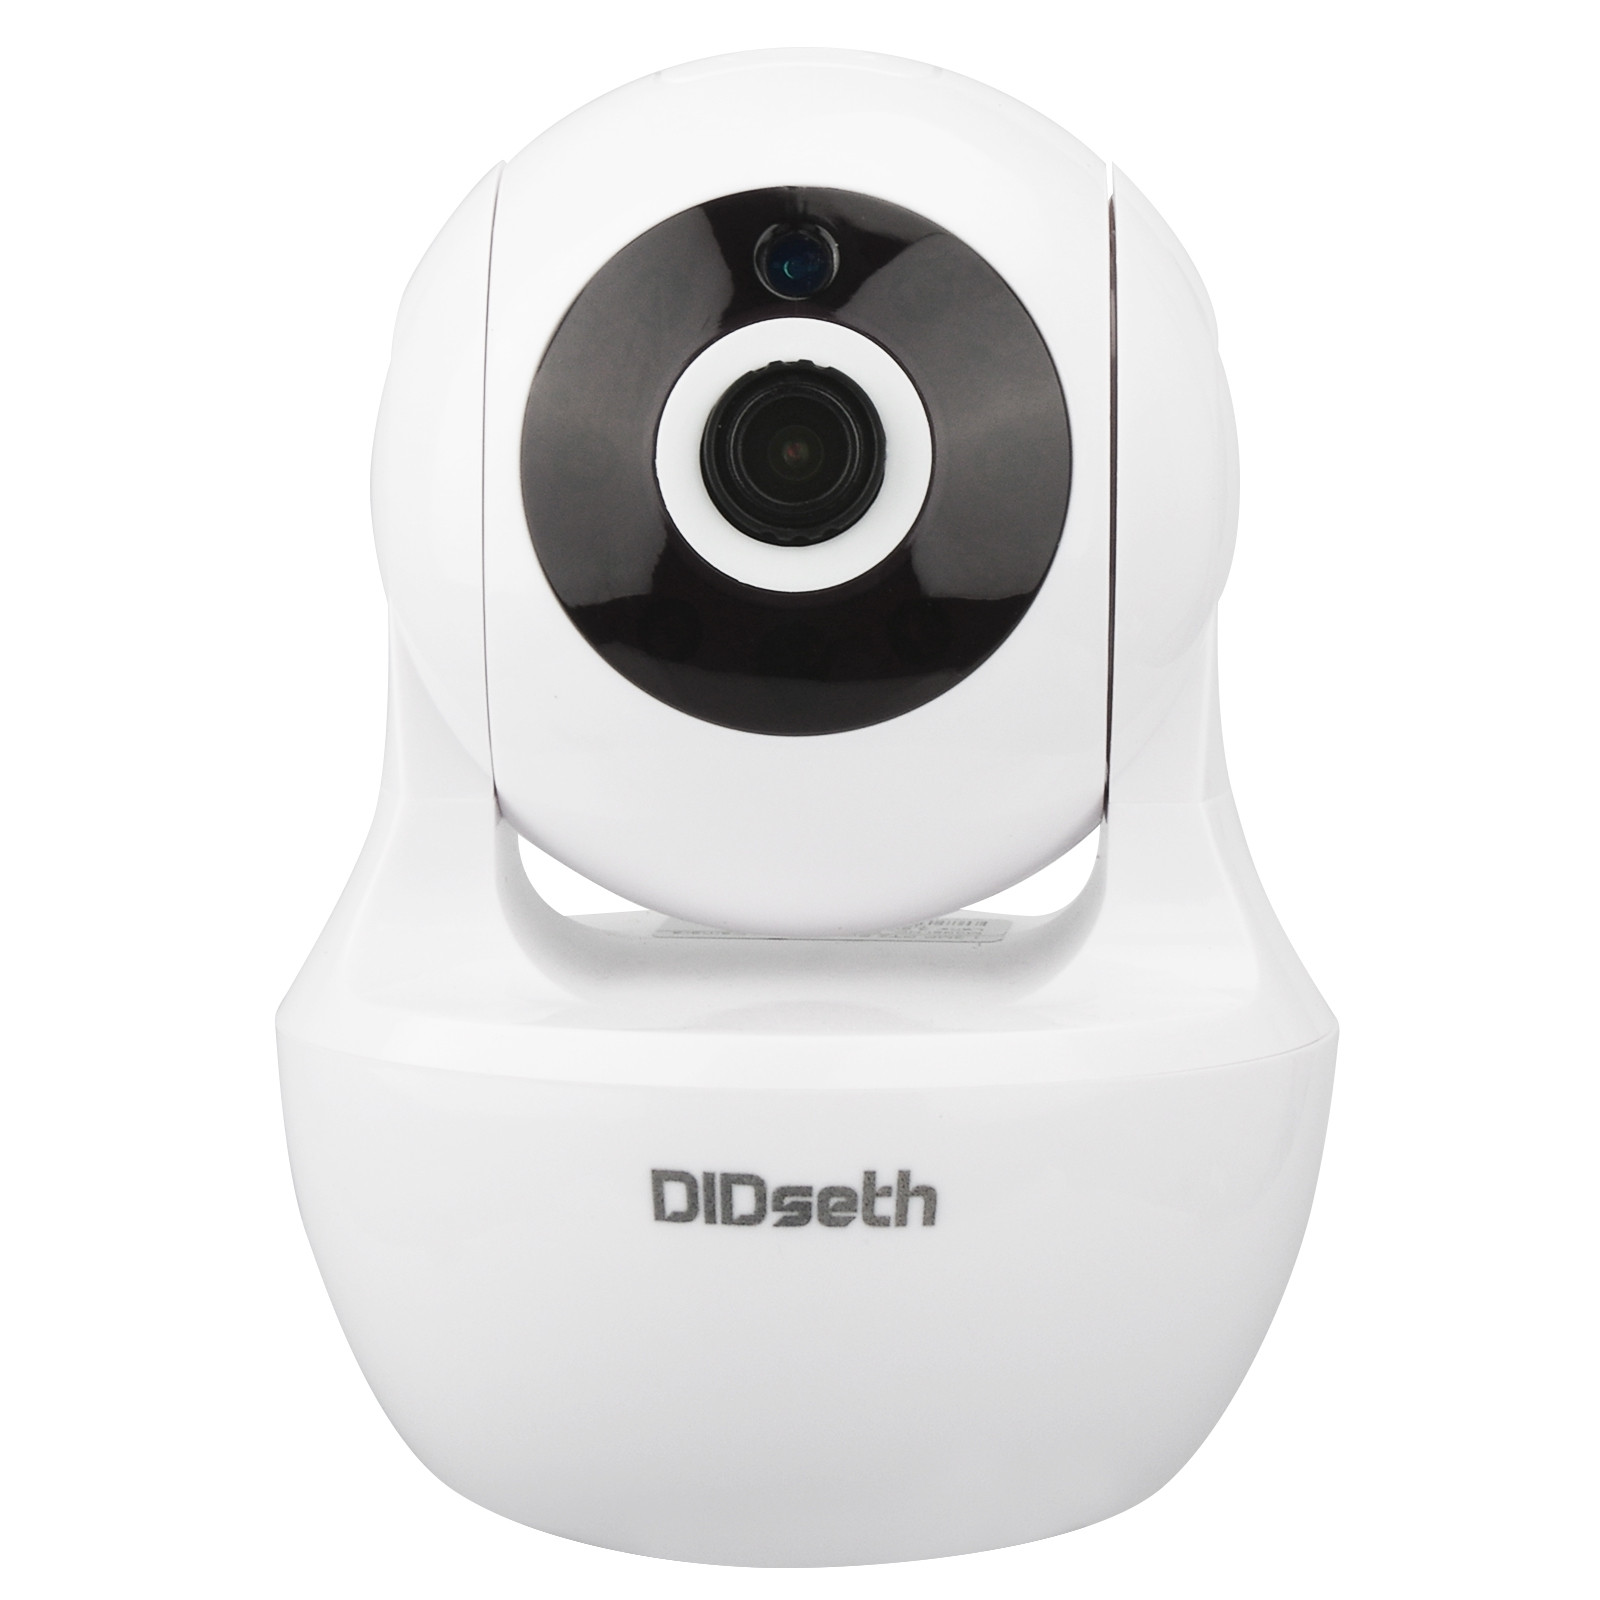 DIDSeth DID - N73 - 200 1080P 2 Million IPC Network Camera